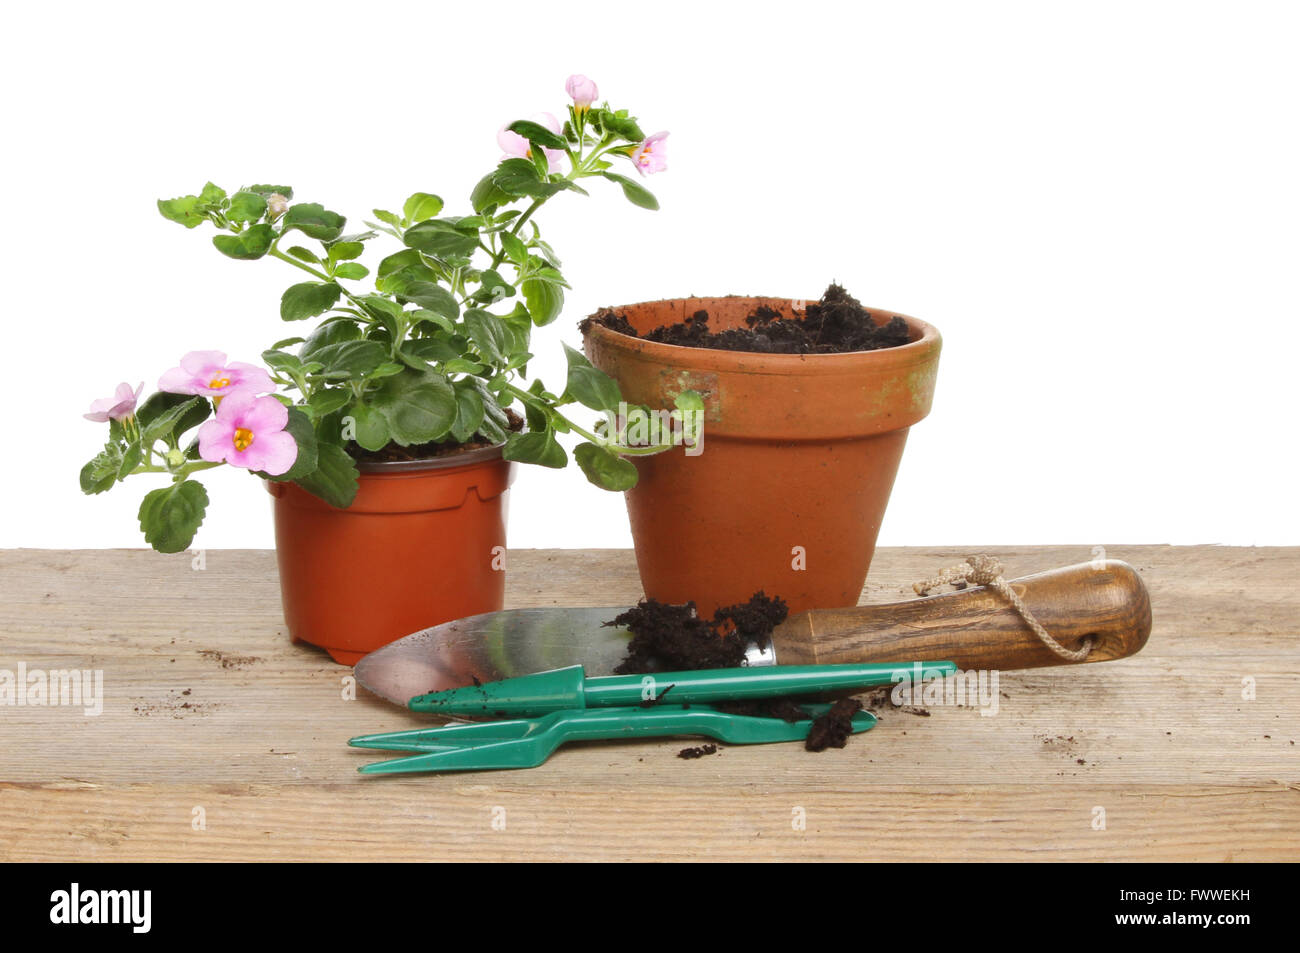 Bacopa bedding plant and tolls for potting on, on a potting bench - Stock Image